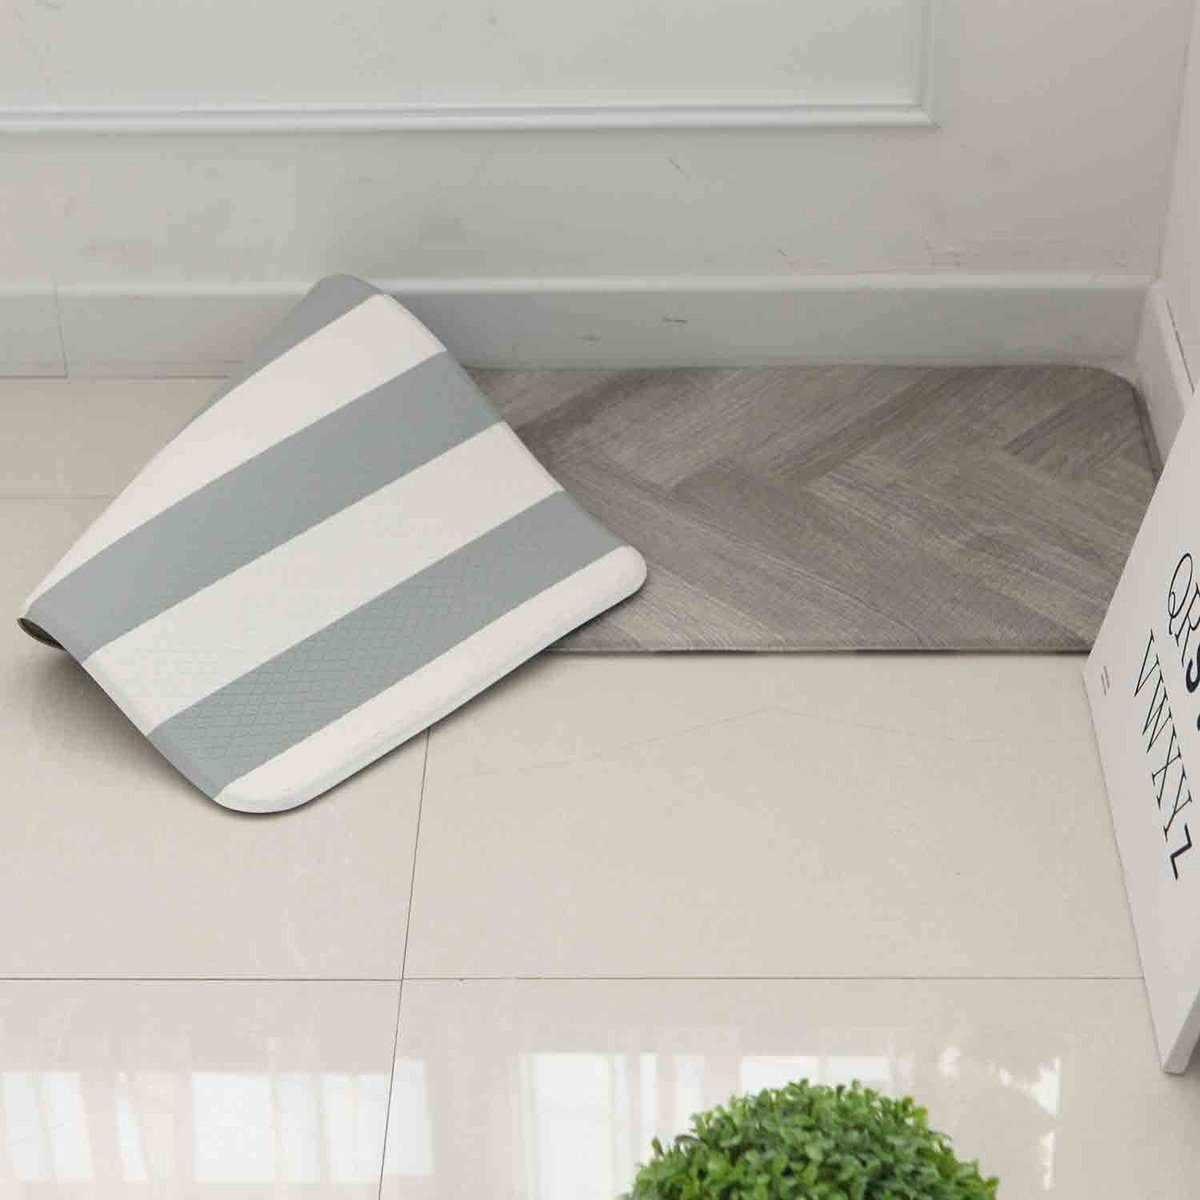 Anti Fatigue Cushion Stylish Comfort Floor Foam Kitchen Mat, Office Mat, Waterproof, Easy to clean, Soft and Thick, Non Toxic, Reversible (Grey and Stripe, 17